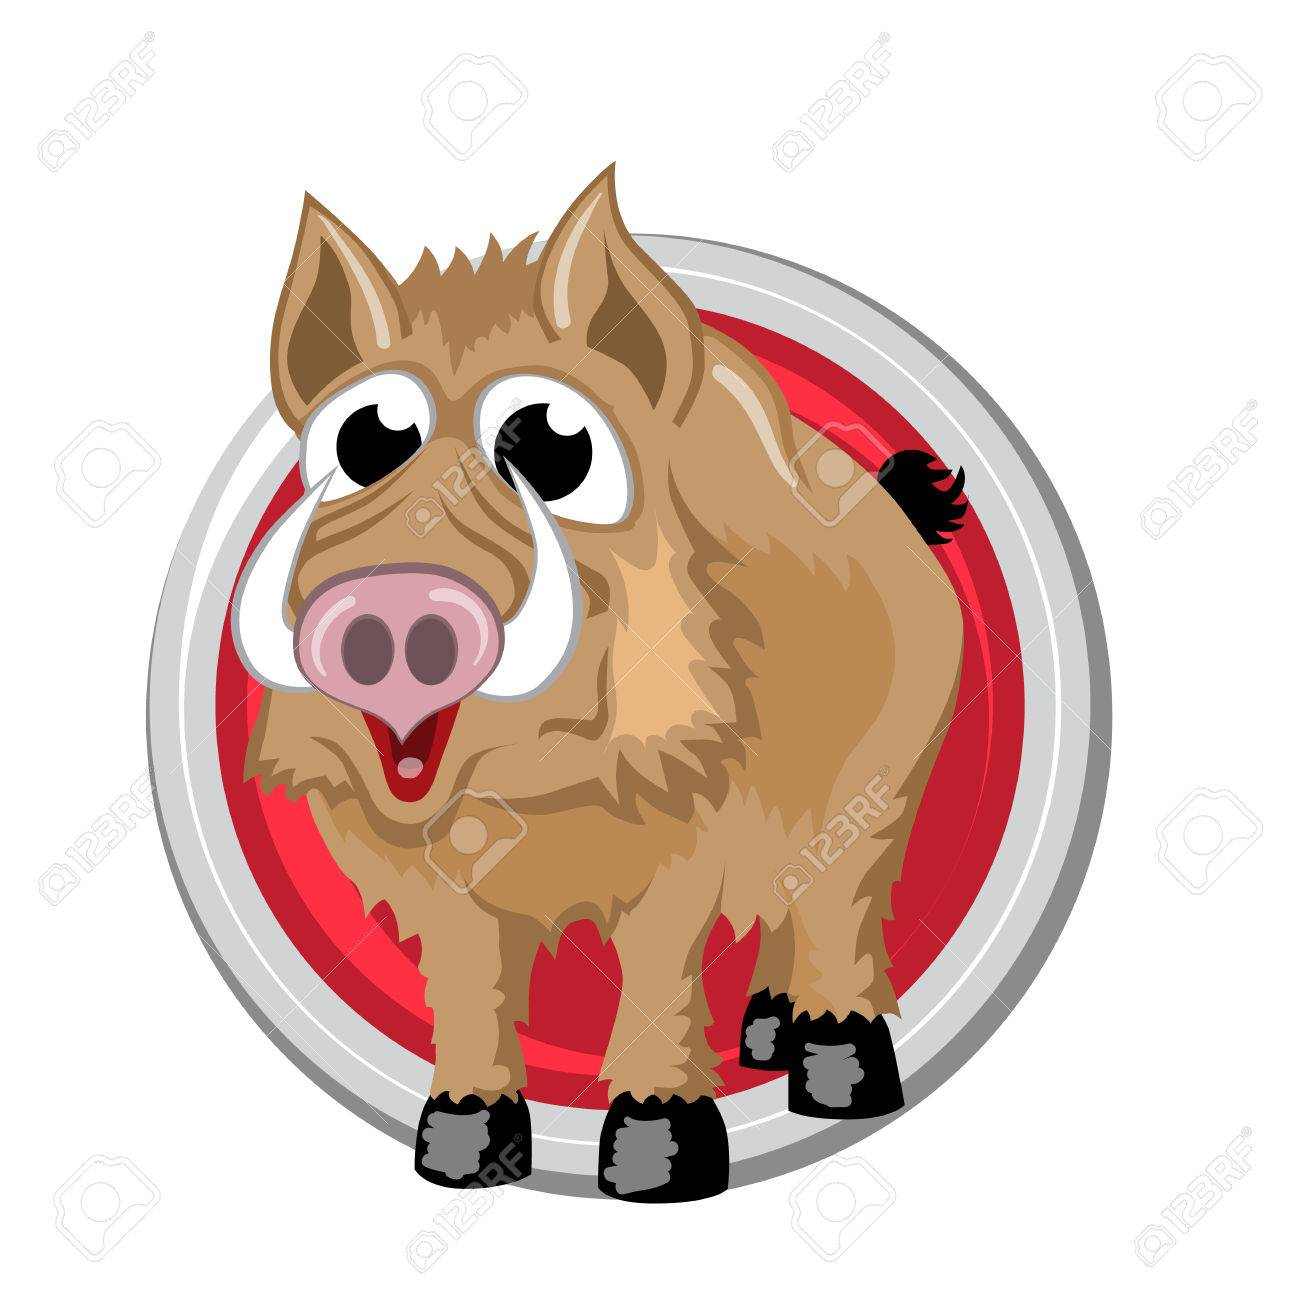 Boar orient horoscope sign isolated in circle chinese symbols boar orient horoscope sign isolated in circle chinese symbols zodiac stock photo biocorpaavc Gallery